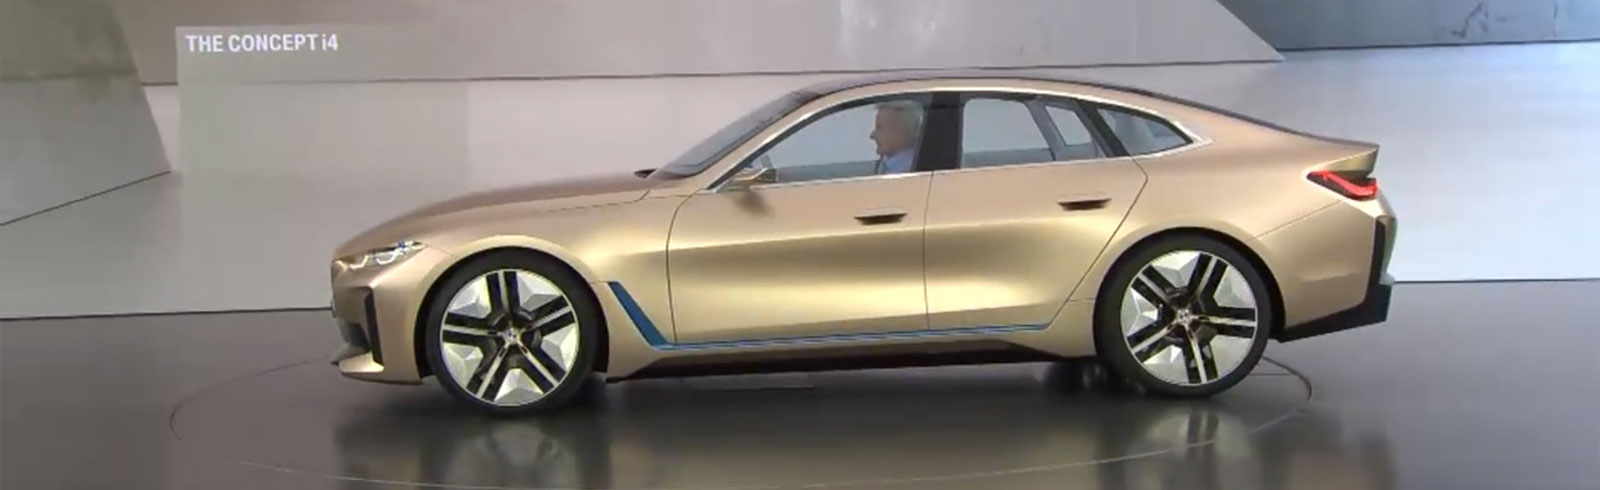 The BMW Concept i4 goes official with a range of up to 600 km, 530 horsepower